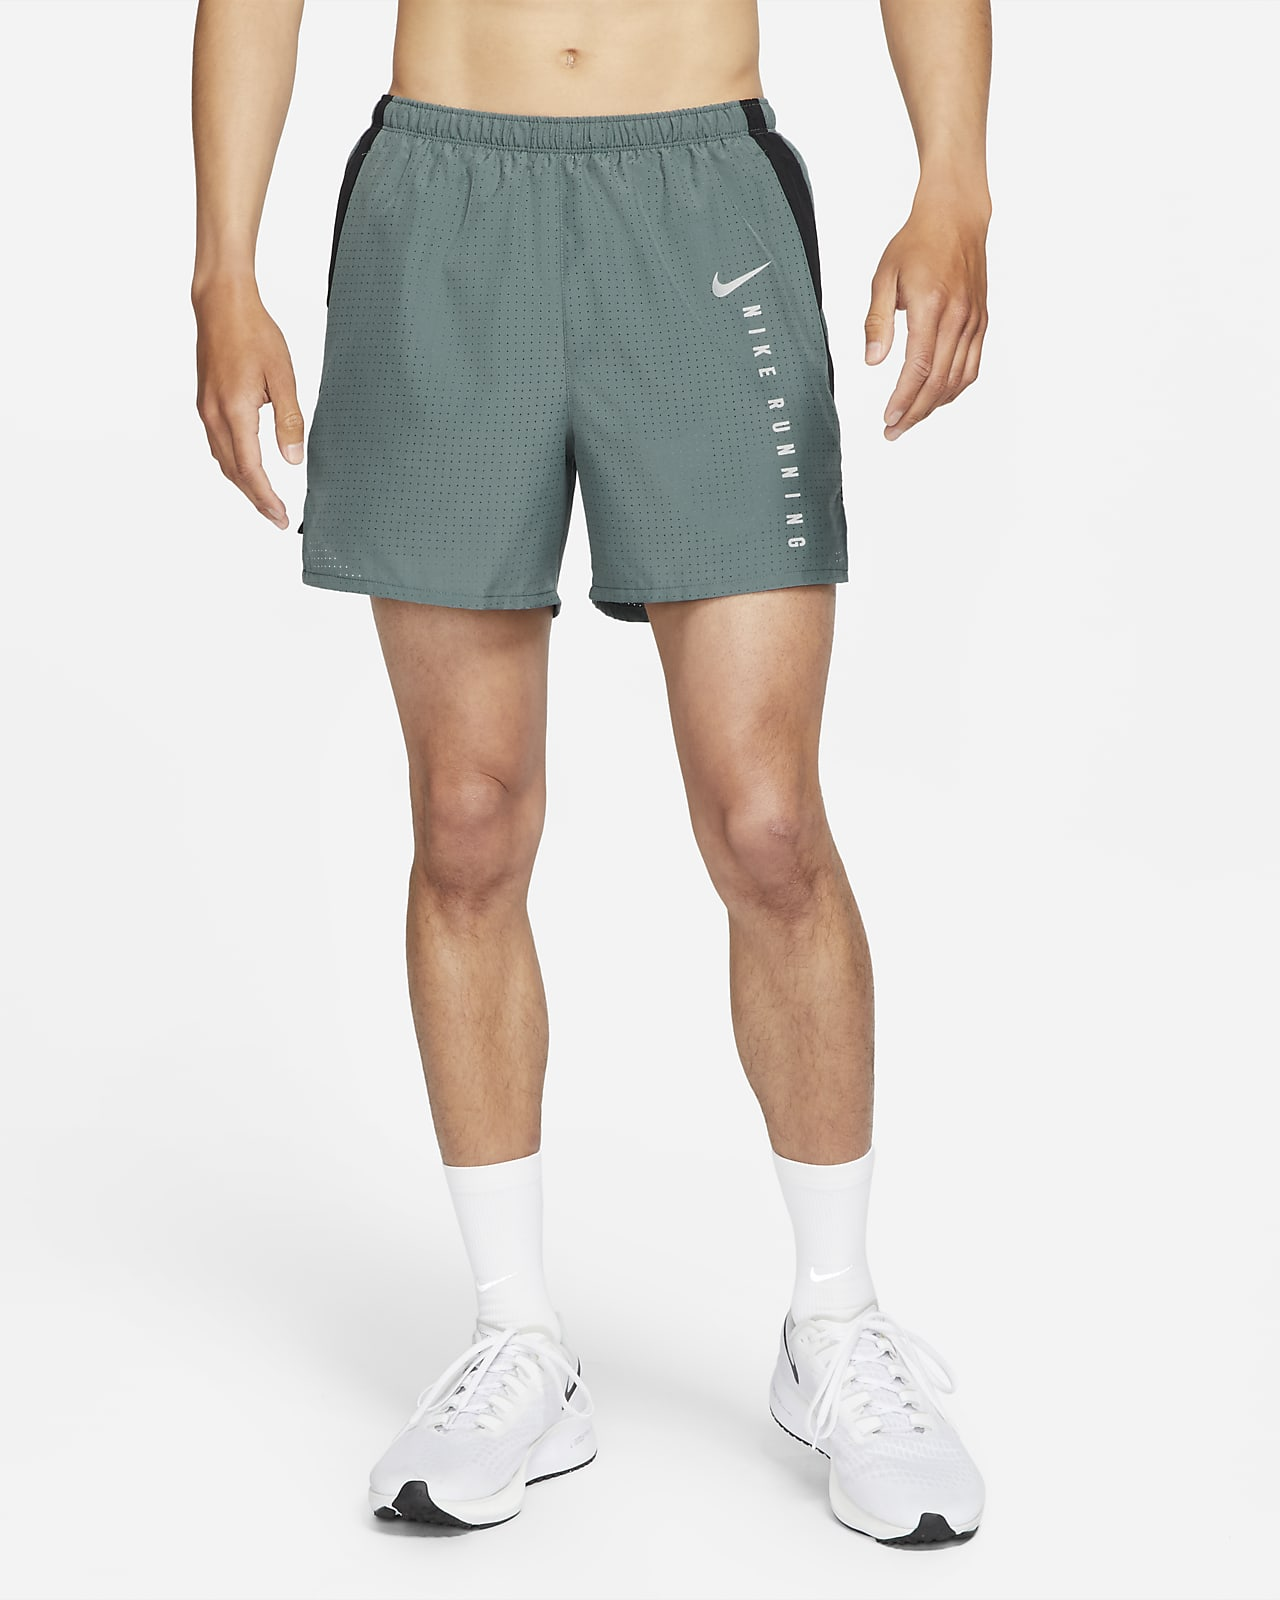 Nike Challenger Run Division Men's Brief-Lined Running Shorts